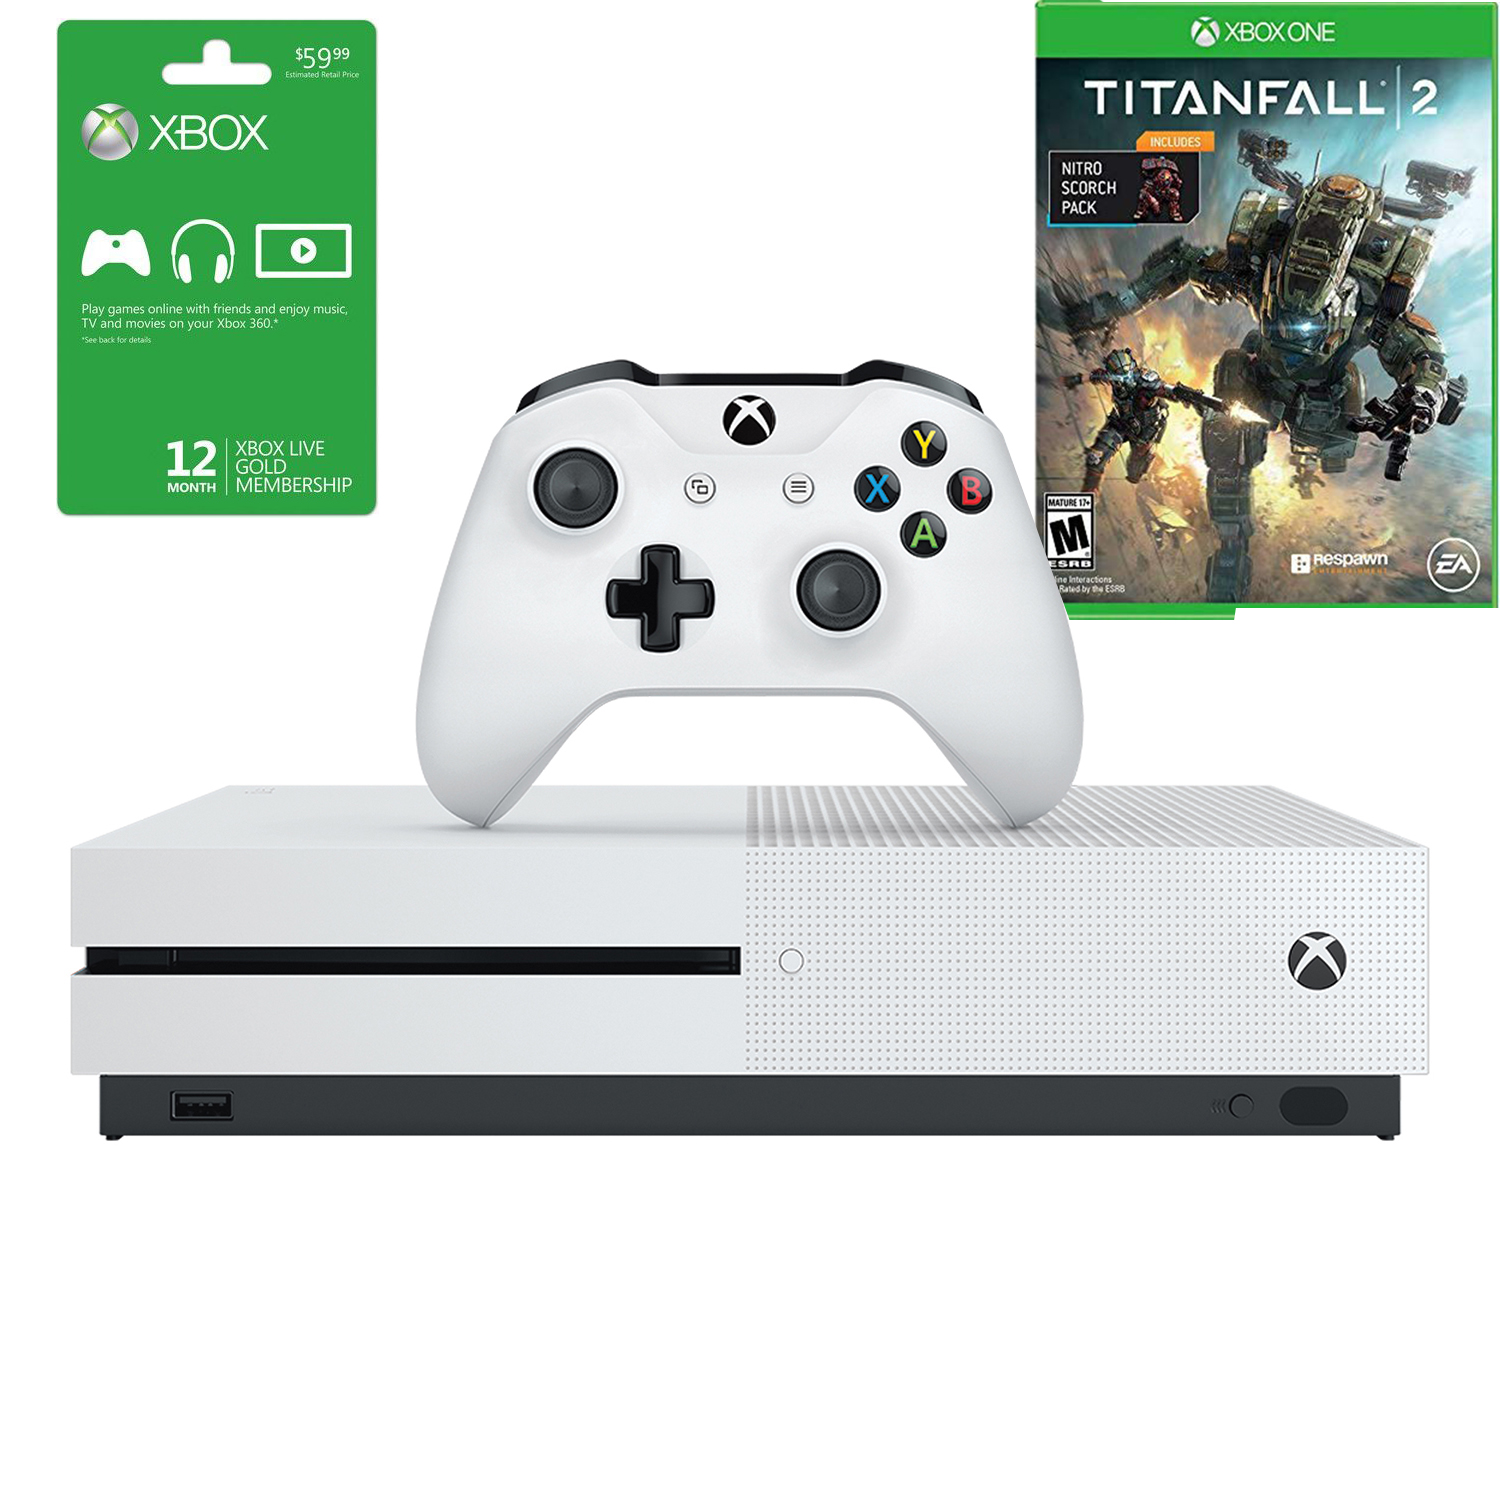 Details about Microsoft Xbox One S Console 1TB Console 12M Gold Membership  Titanfall 2 Bundle